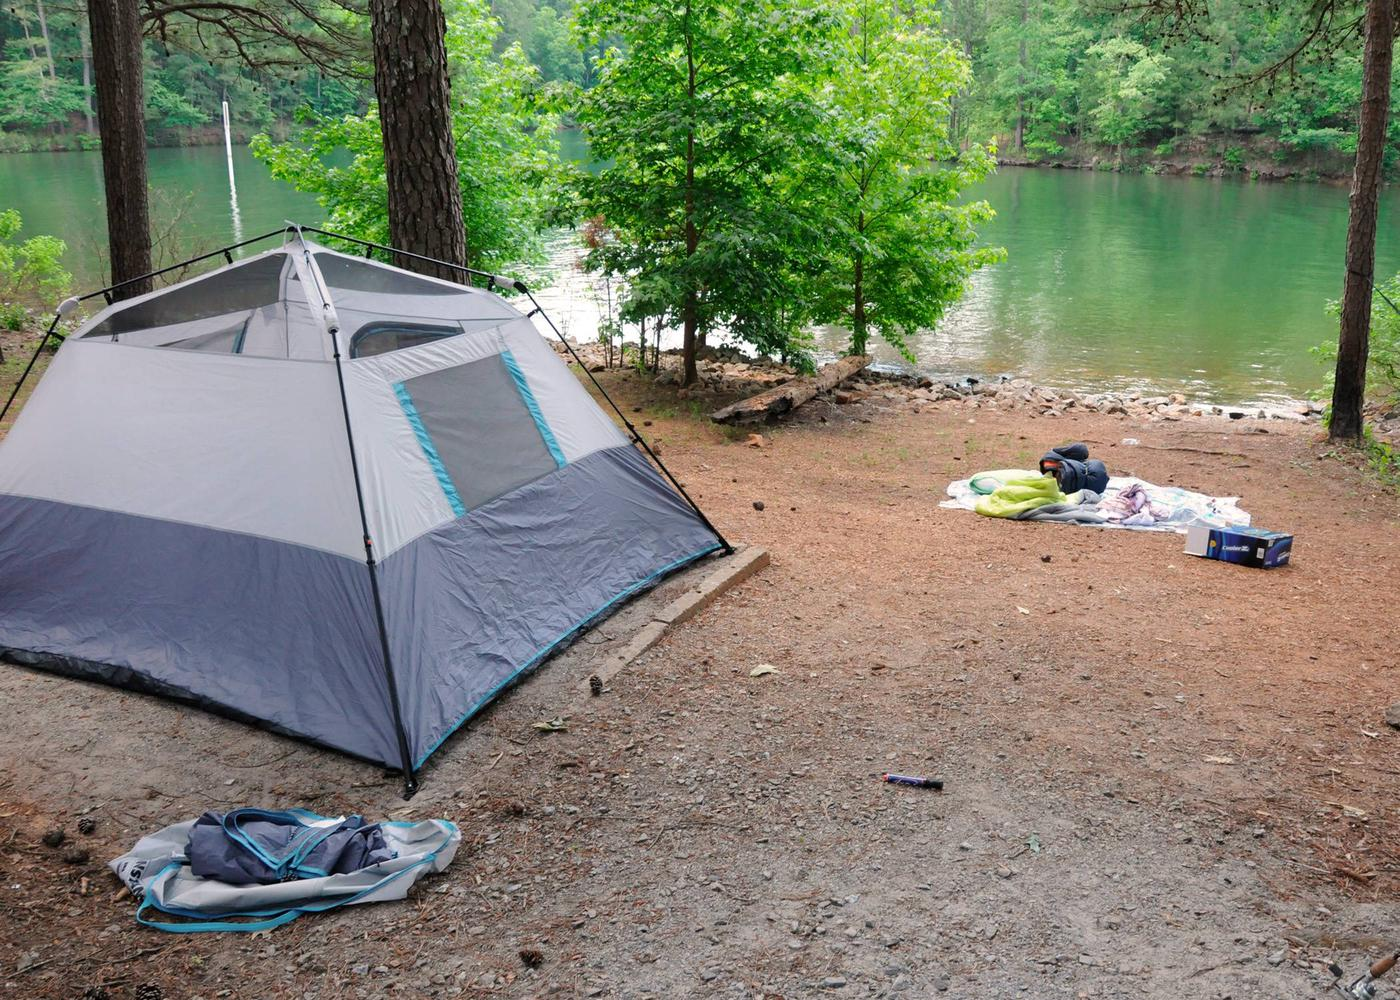 Campsite view, water access.McKaskey Creek Campground, campsite 39.